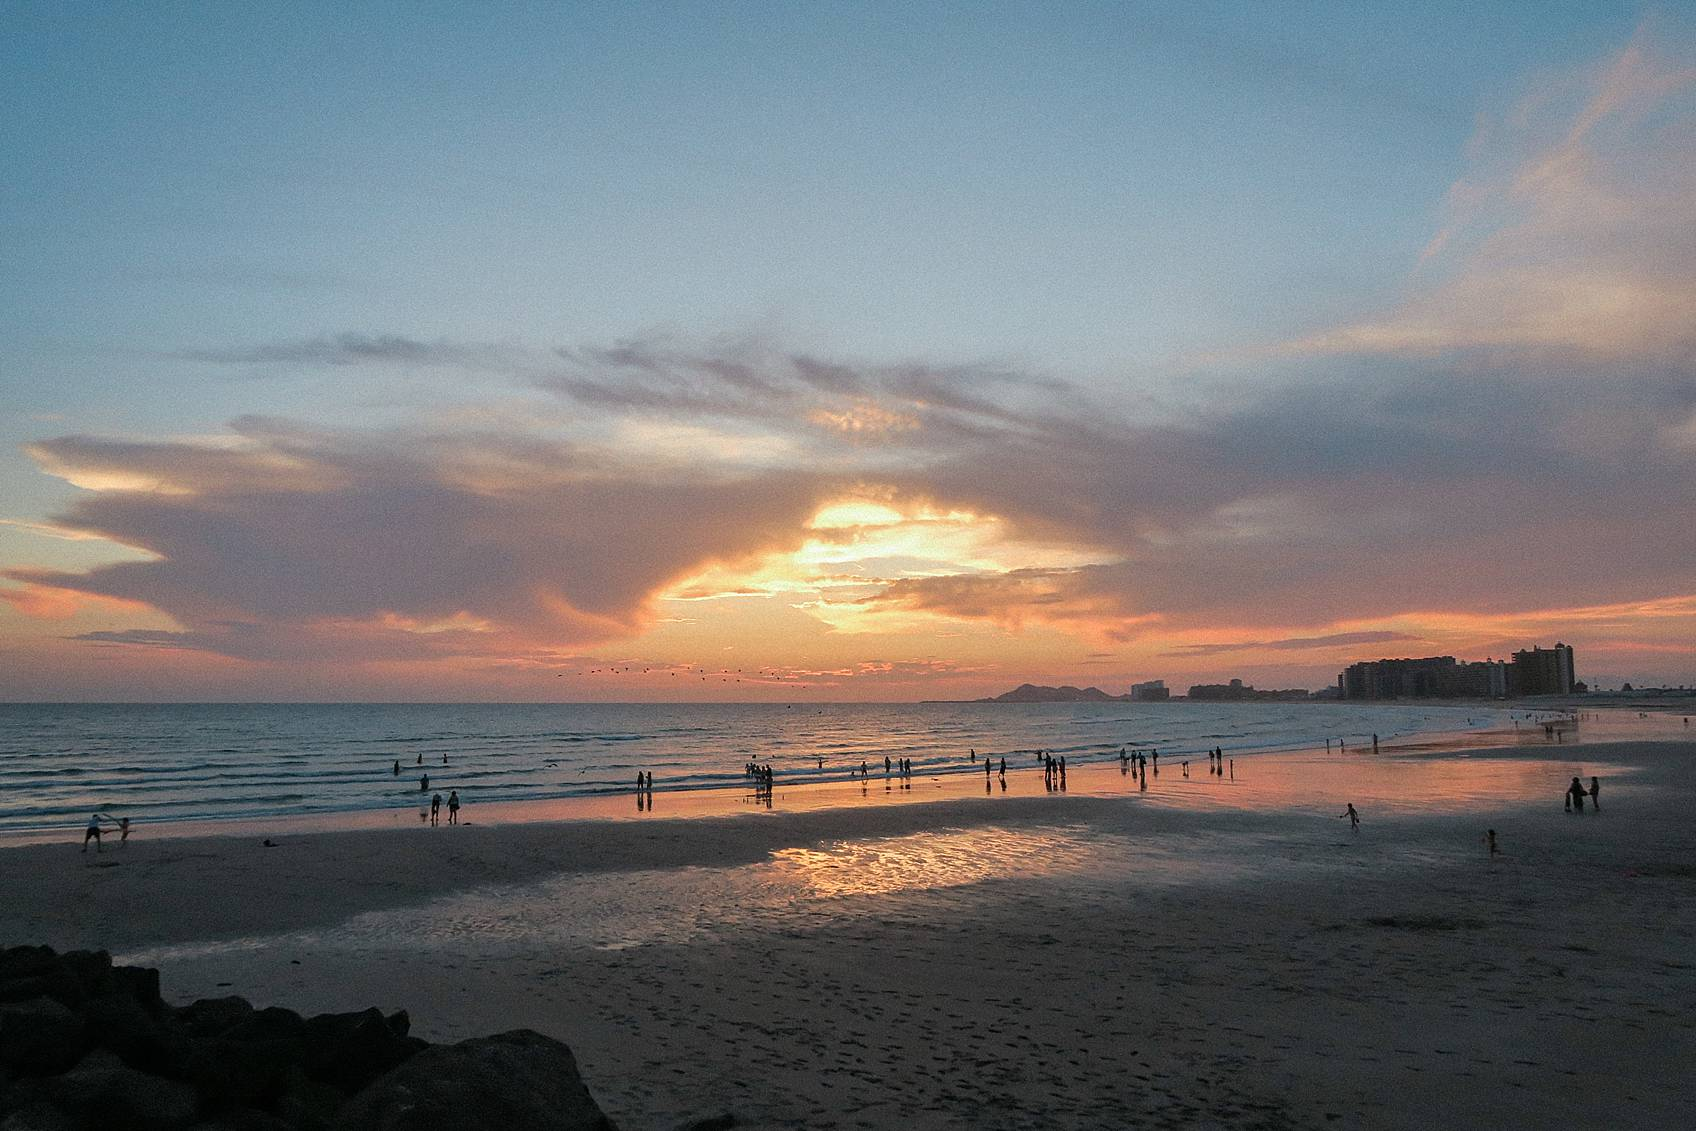 sunset at rocky point Mexico